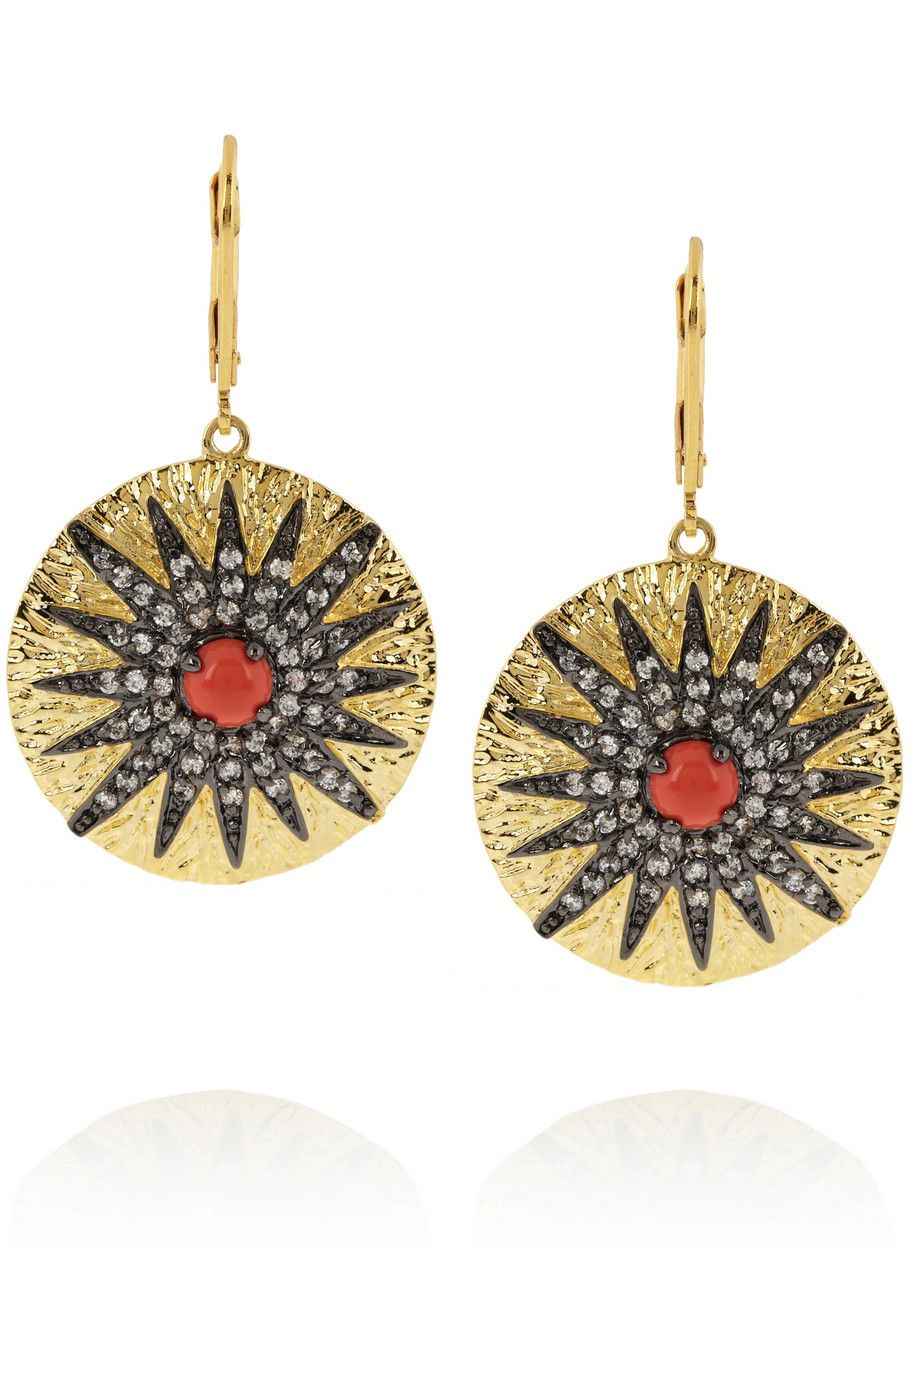 Gold-plated, cubic zirconia and cabochon earrings by Kenneth Jay Lane